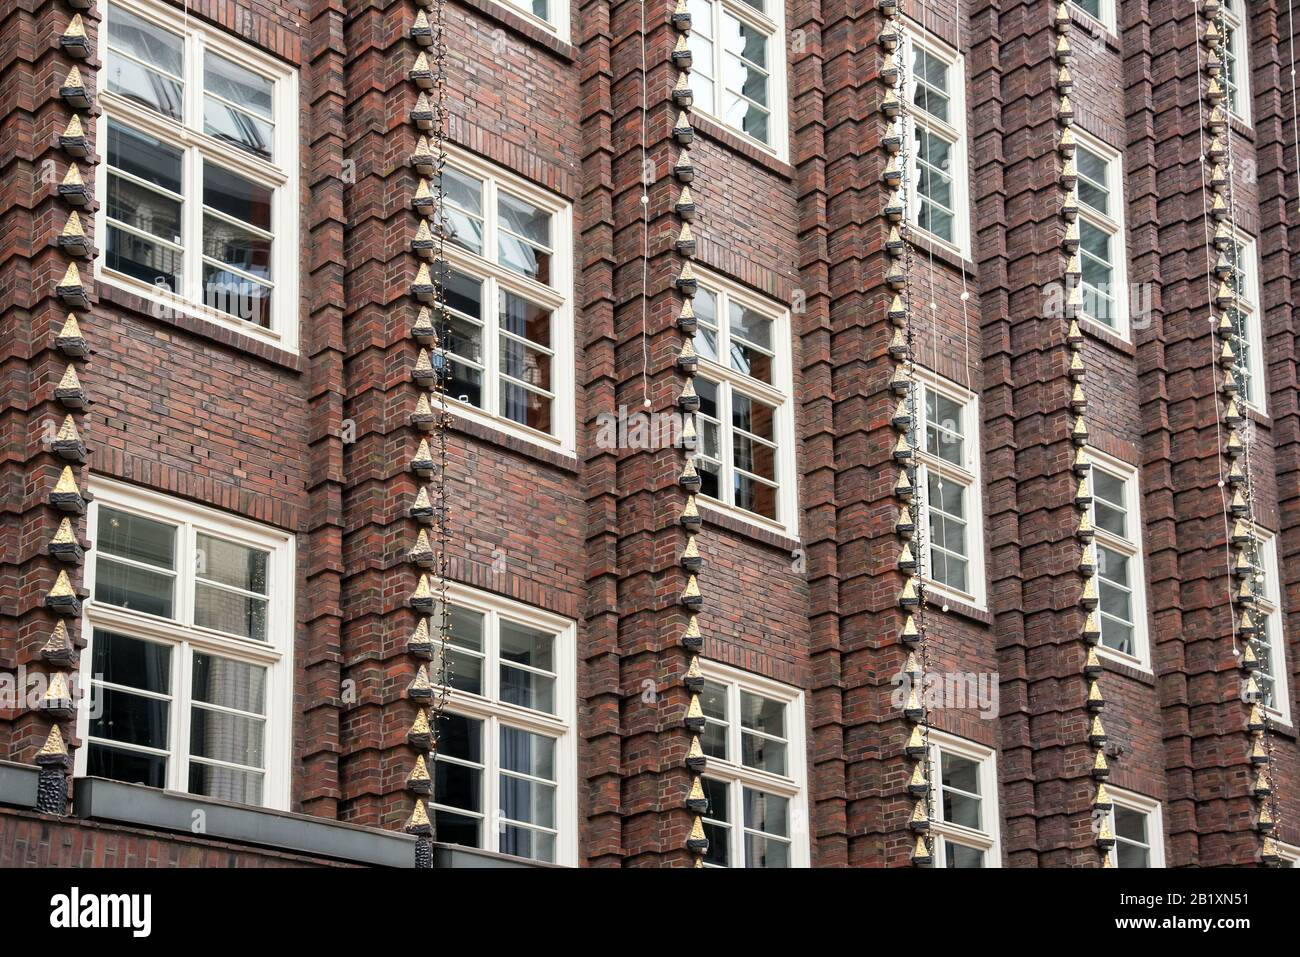 Brown brick facade of palace building with windows and decorative vertical ledges, viewed from low angle in full frame Stock Photo